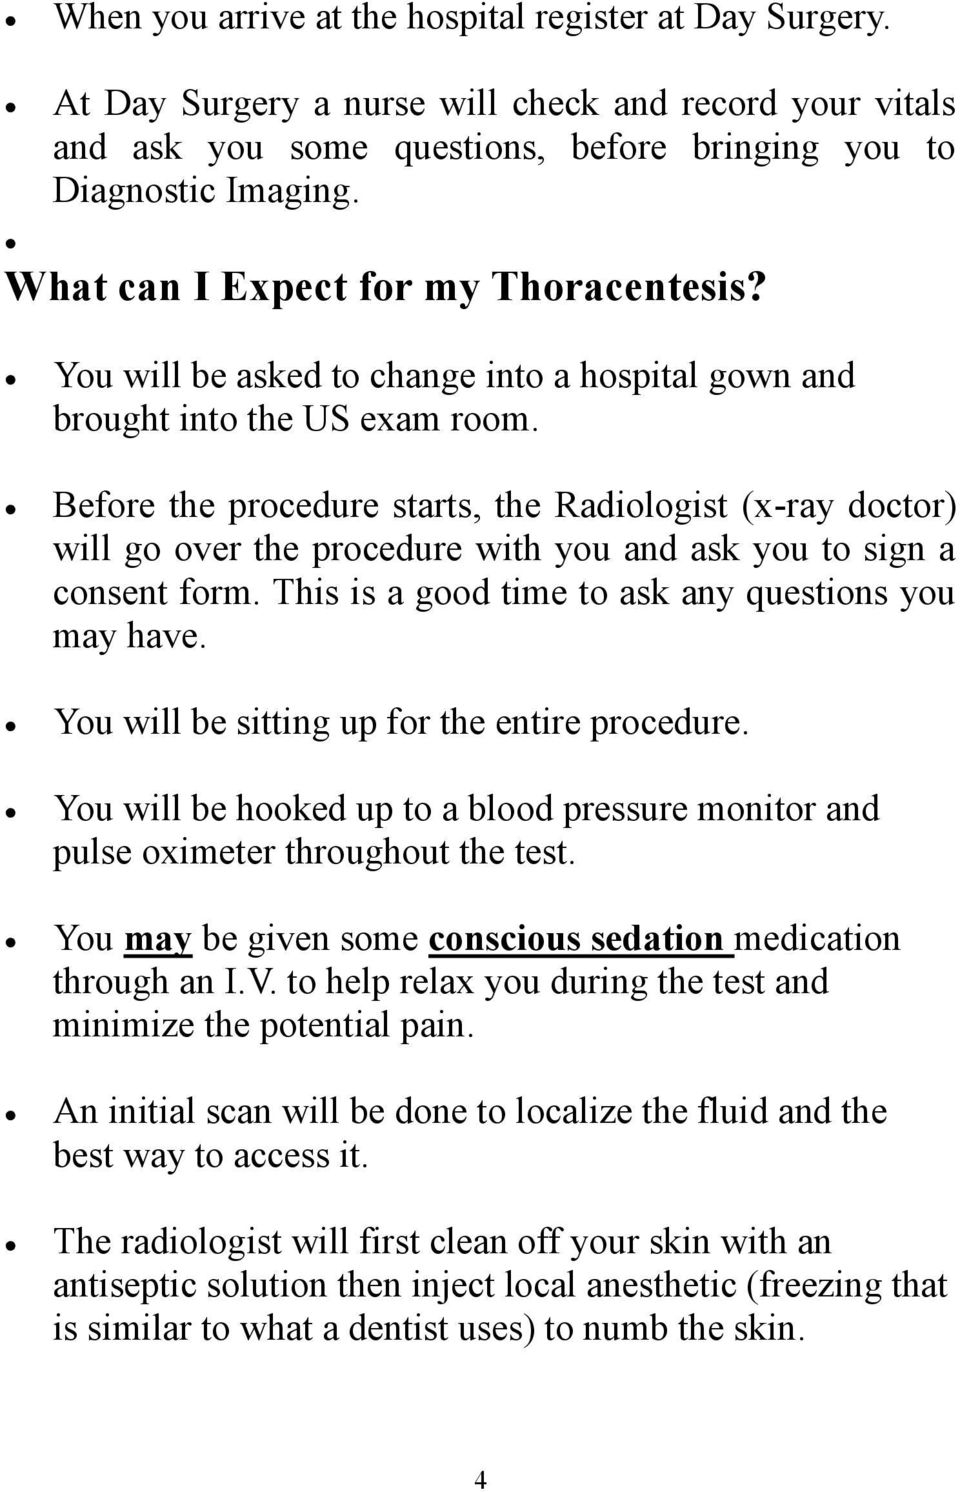 Before the procedure starts, the Radiologist (x-ray doctor) will go over the procedure with you and ask you to sign a consent form. This is a good time to ask any questions you may have.